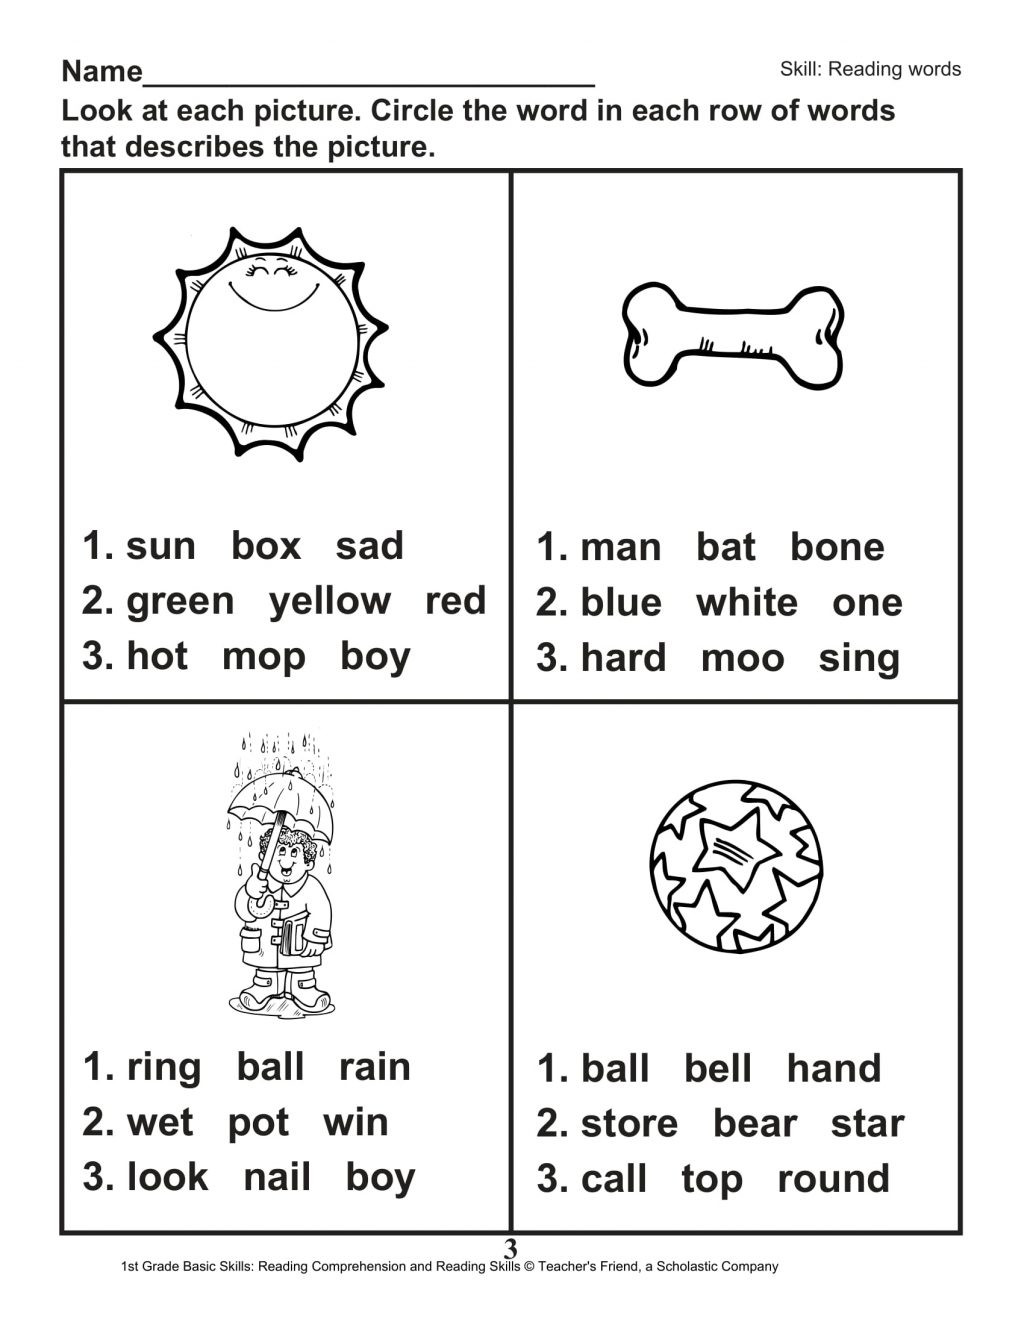 1st Grade Phonics Worksheets Pdf Worksheet Awesome 1st Grade Phonics Worksheets Image Ideas